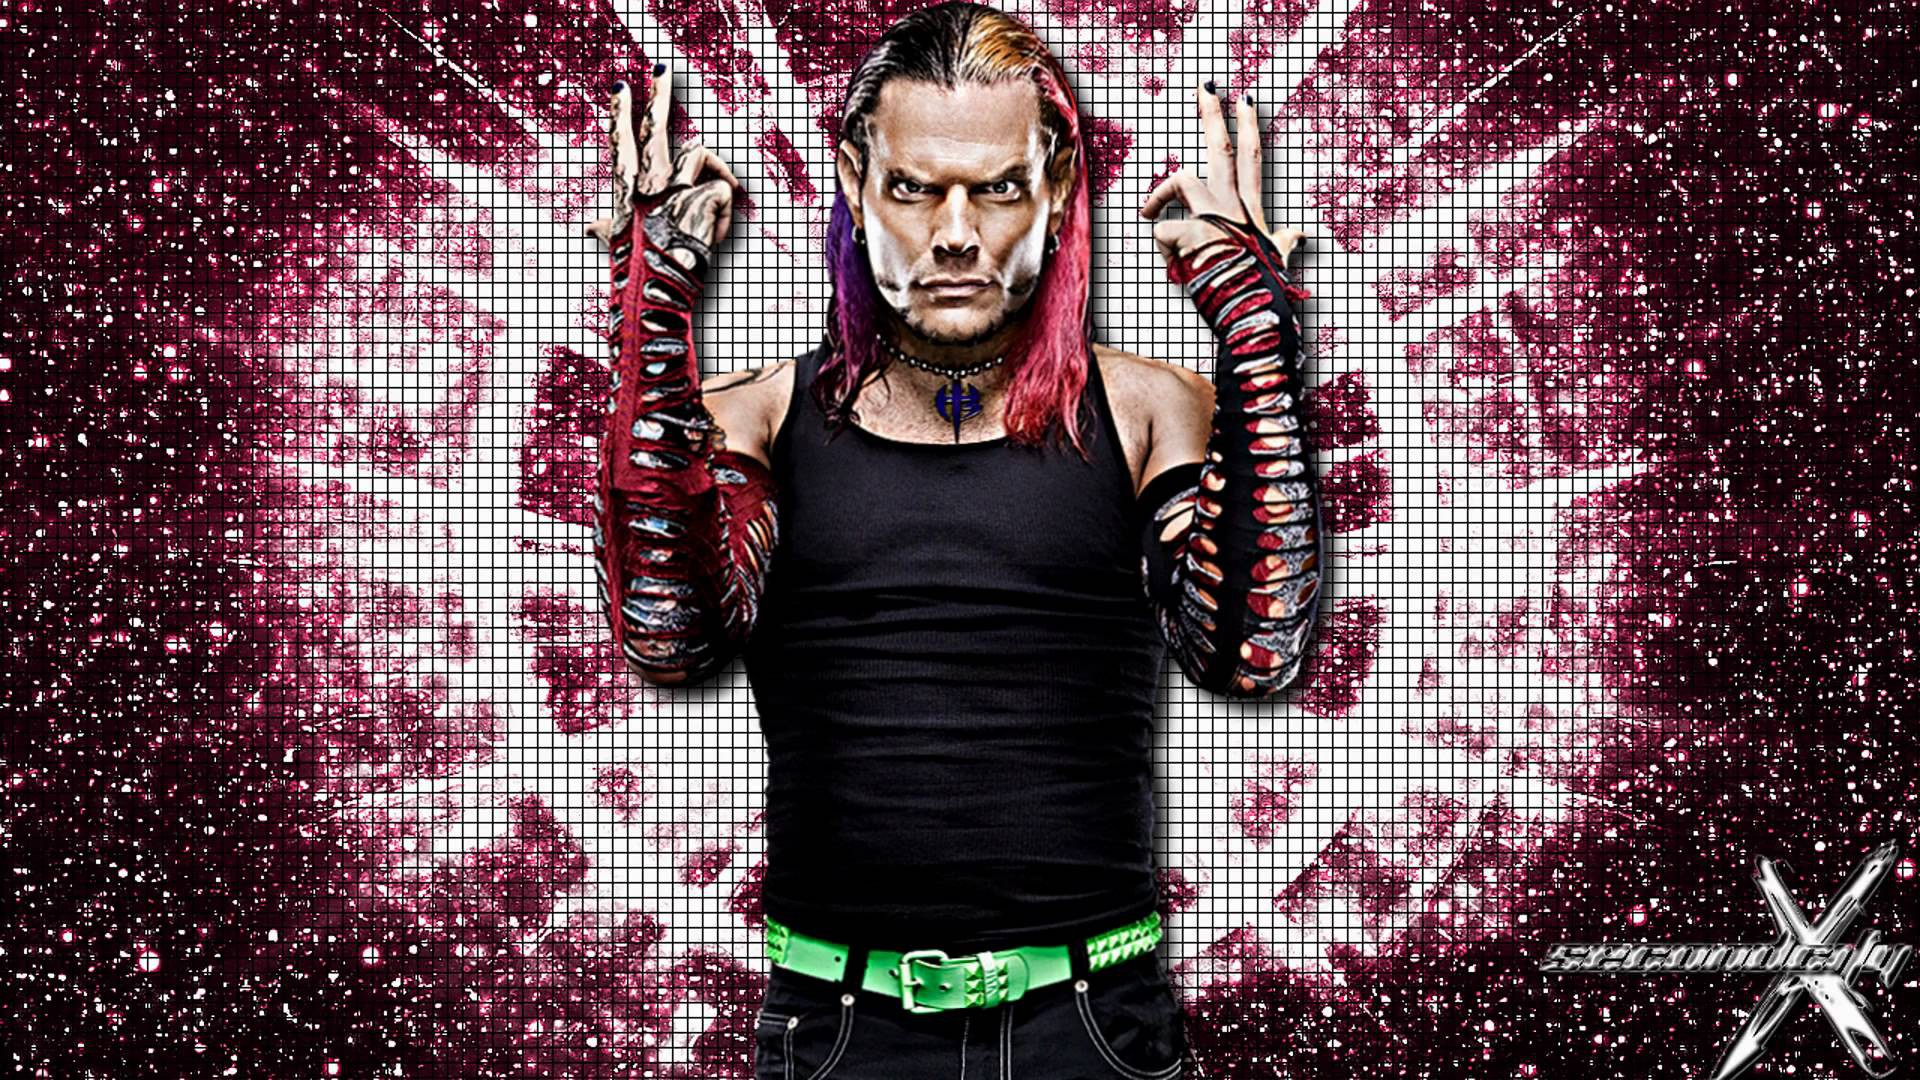 jeff hardy wwe superstar hd wallpaper 3d